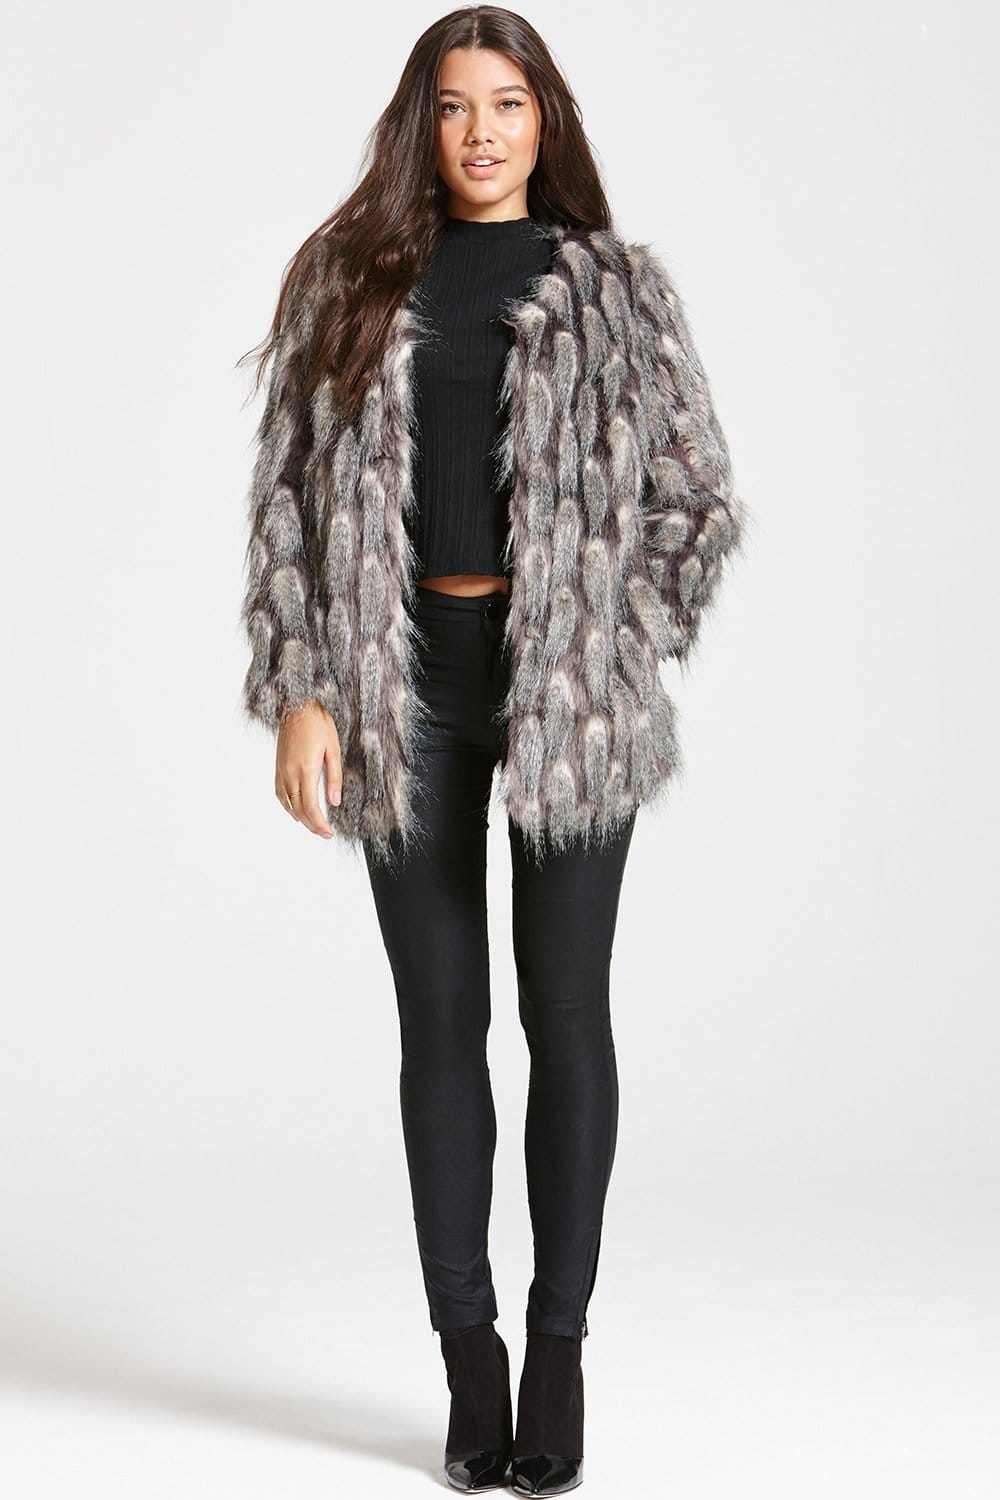 Faux Fur Coats Uk - Tradingbasis